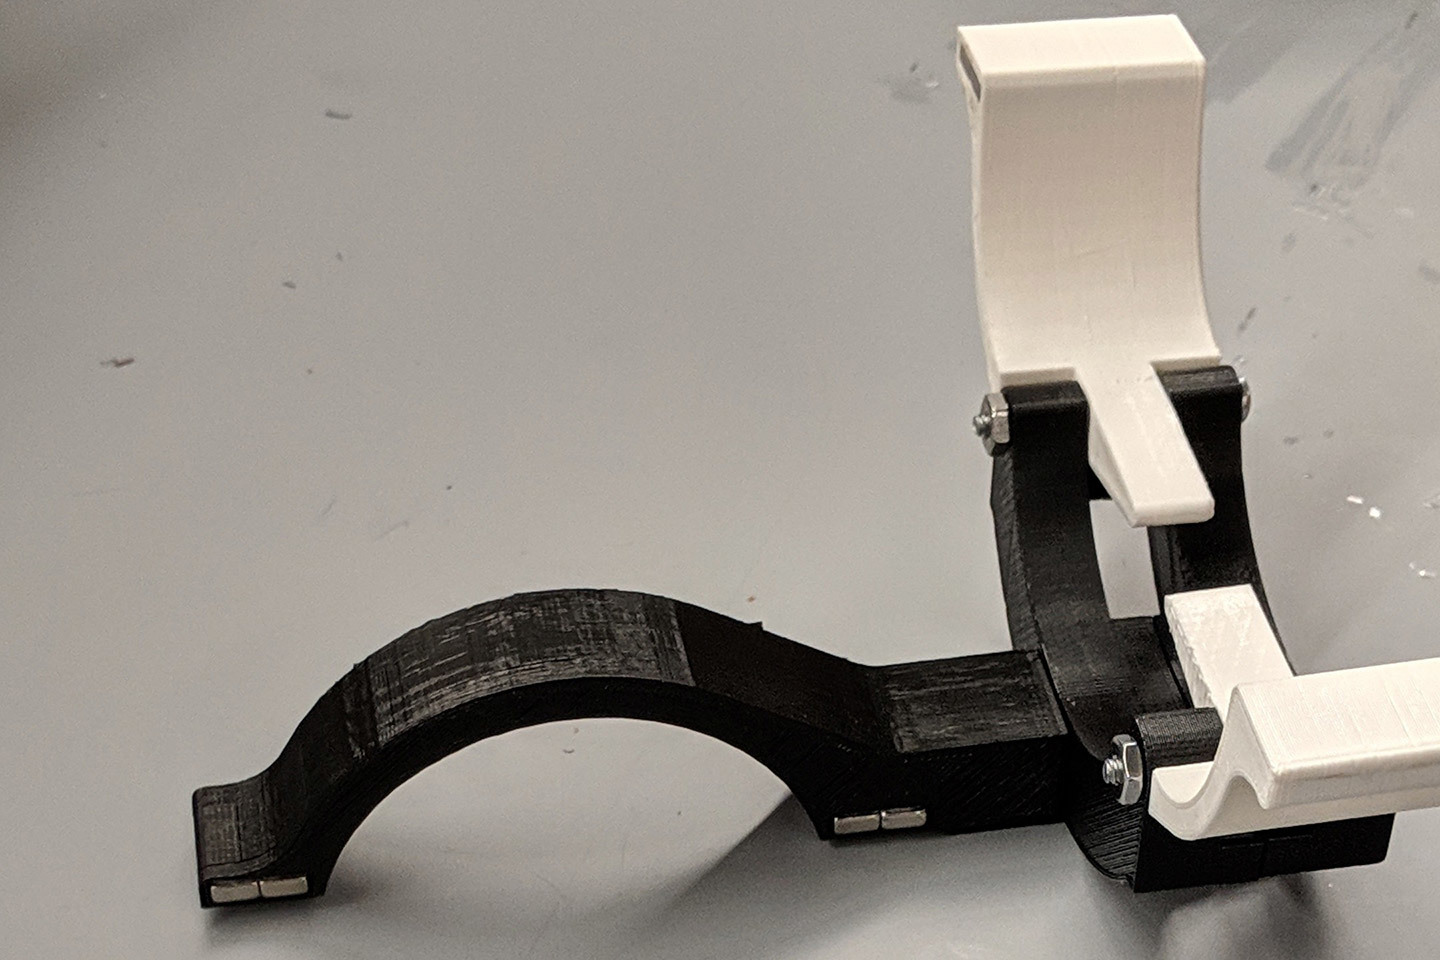 A prototype of an orthotic wrist device to assist with hand tremors.